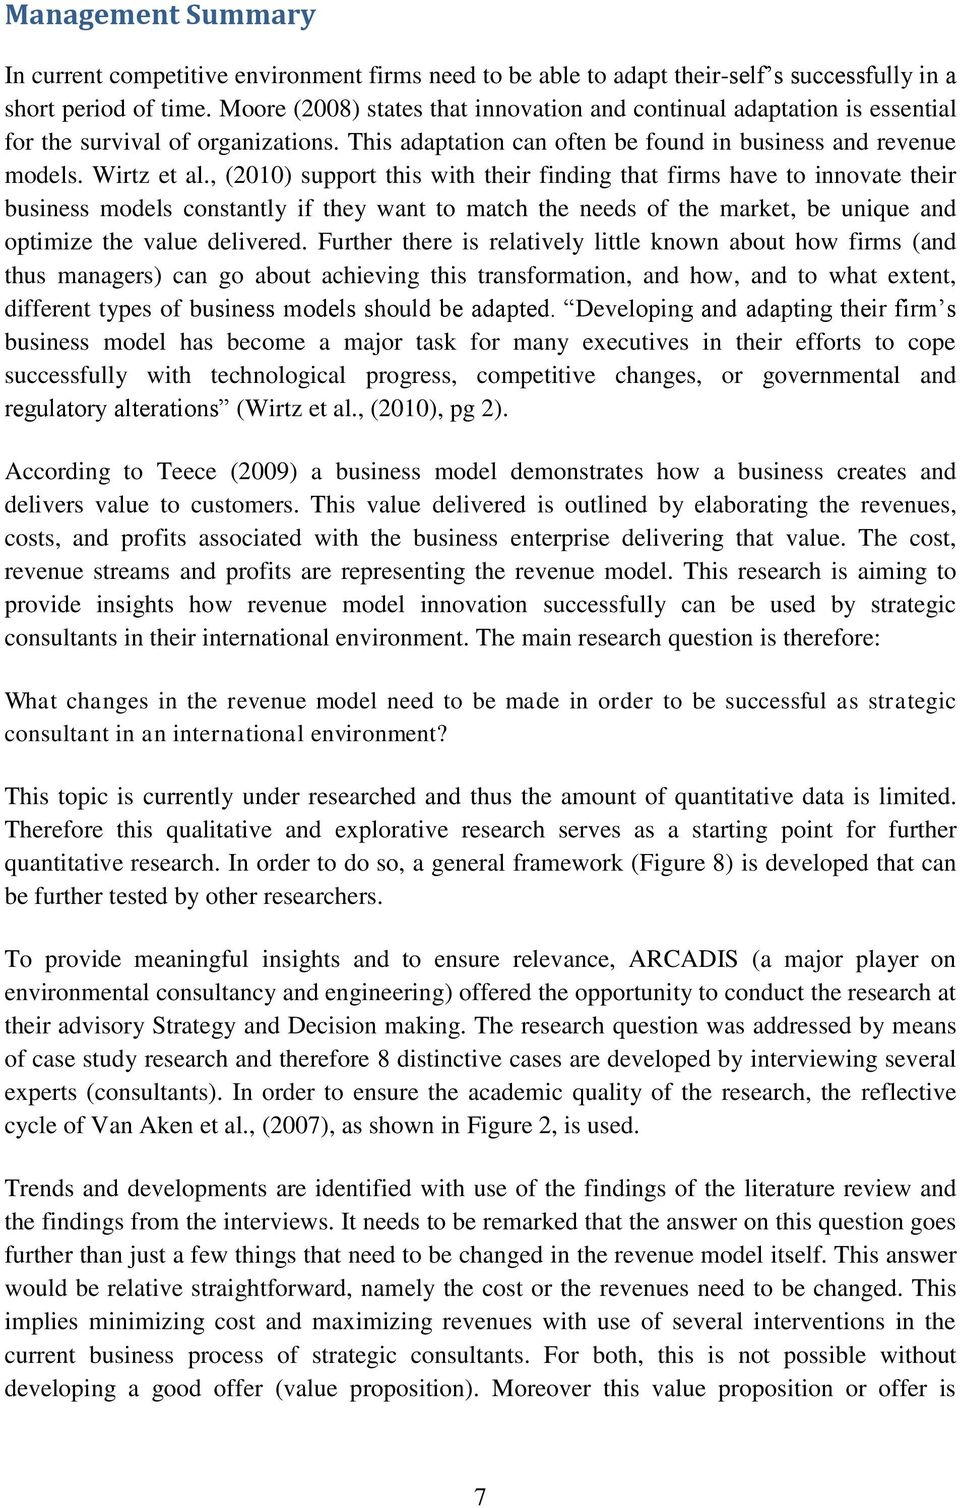 Master Thesis Revenue Model Innovation For Dutch Strategic Envelope Follower Circuit Google Zoeken 2010 Support This With Their Finding That Firms Have To Innovate Business